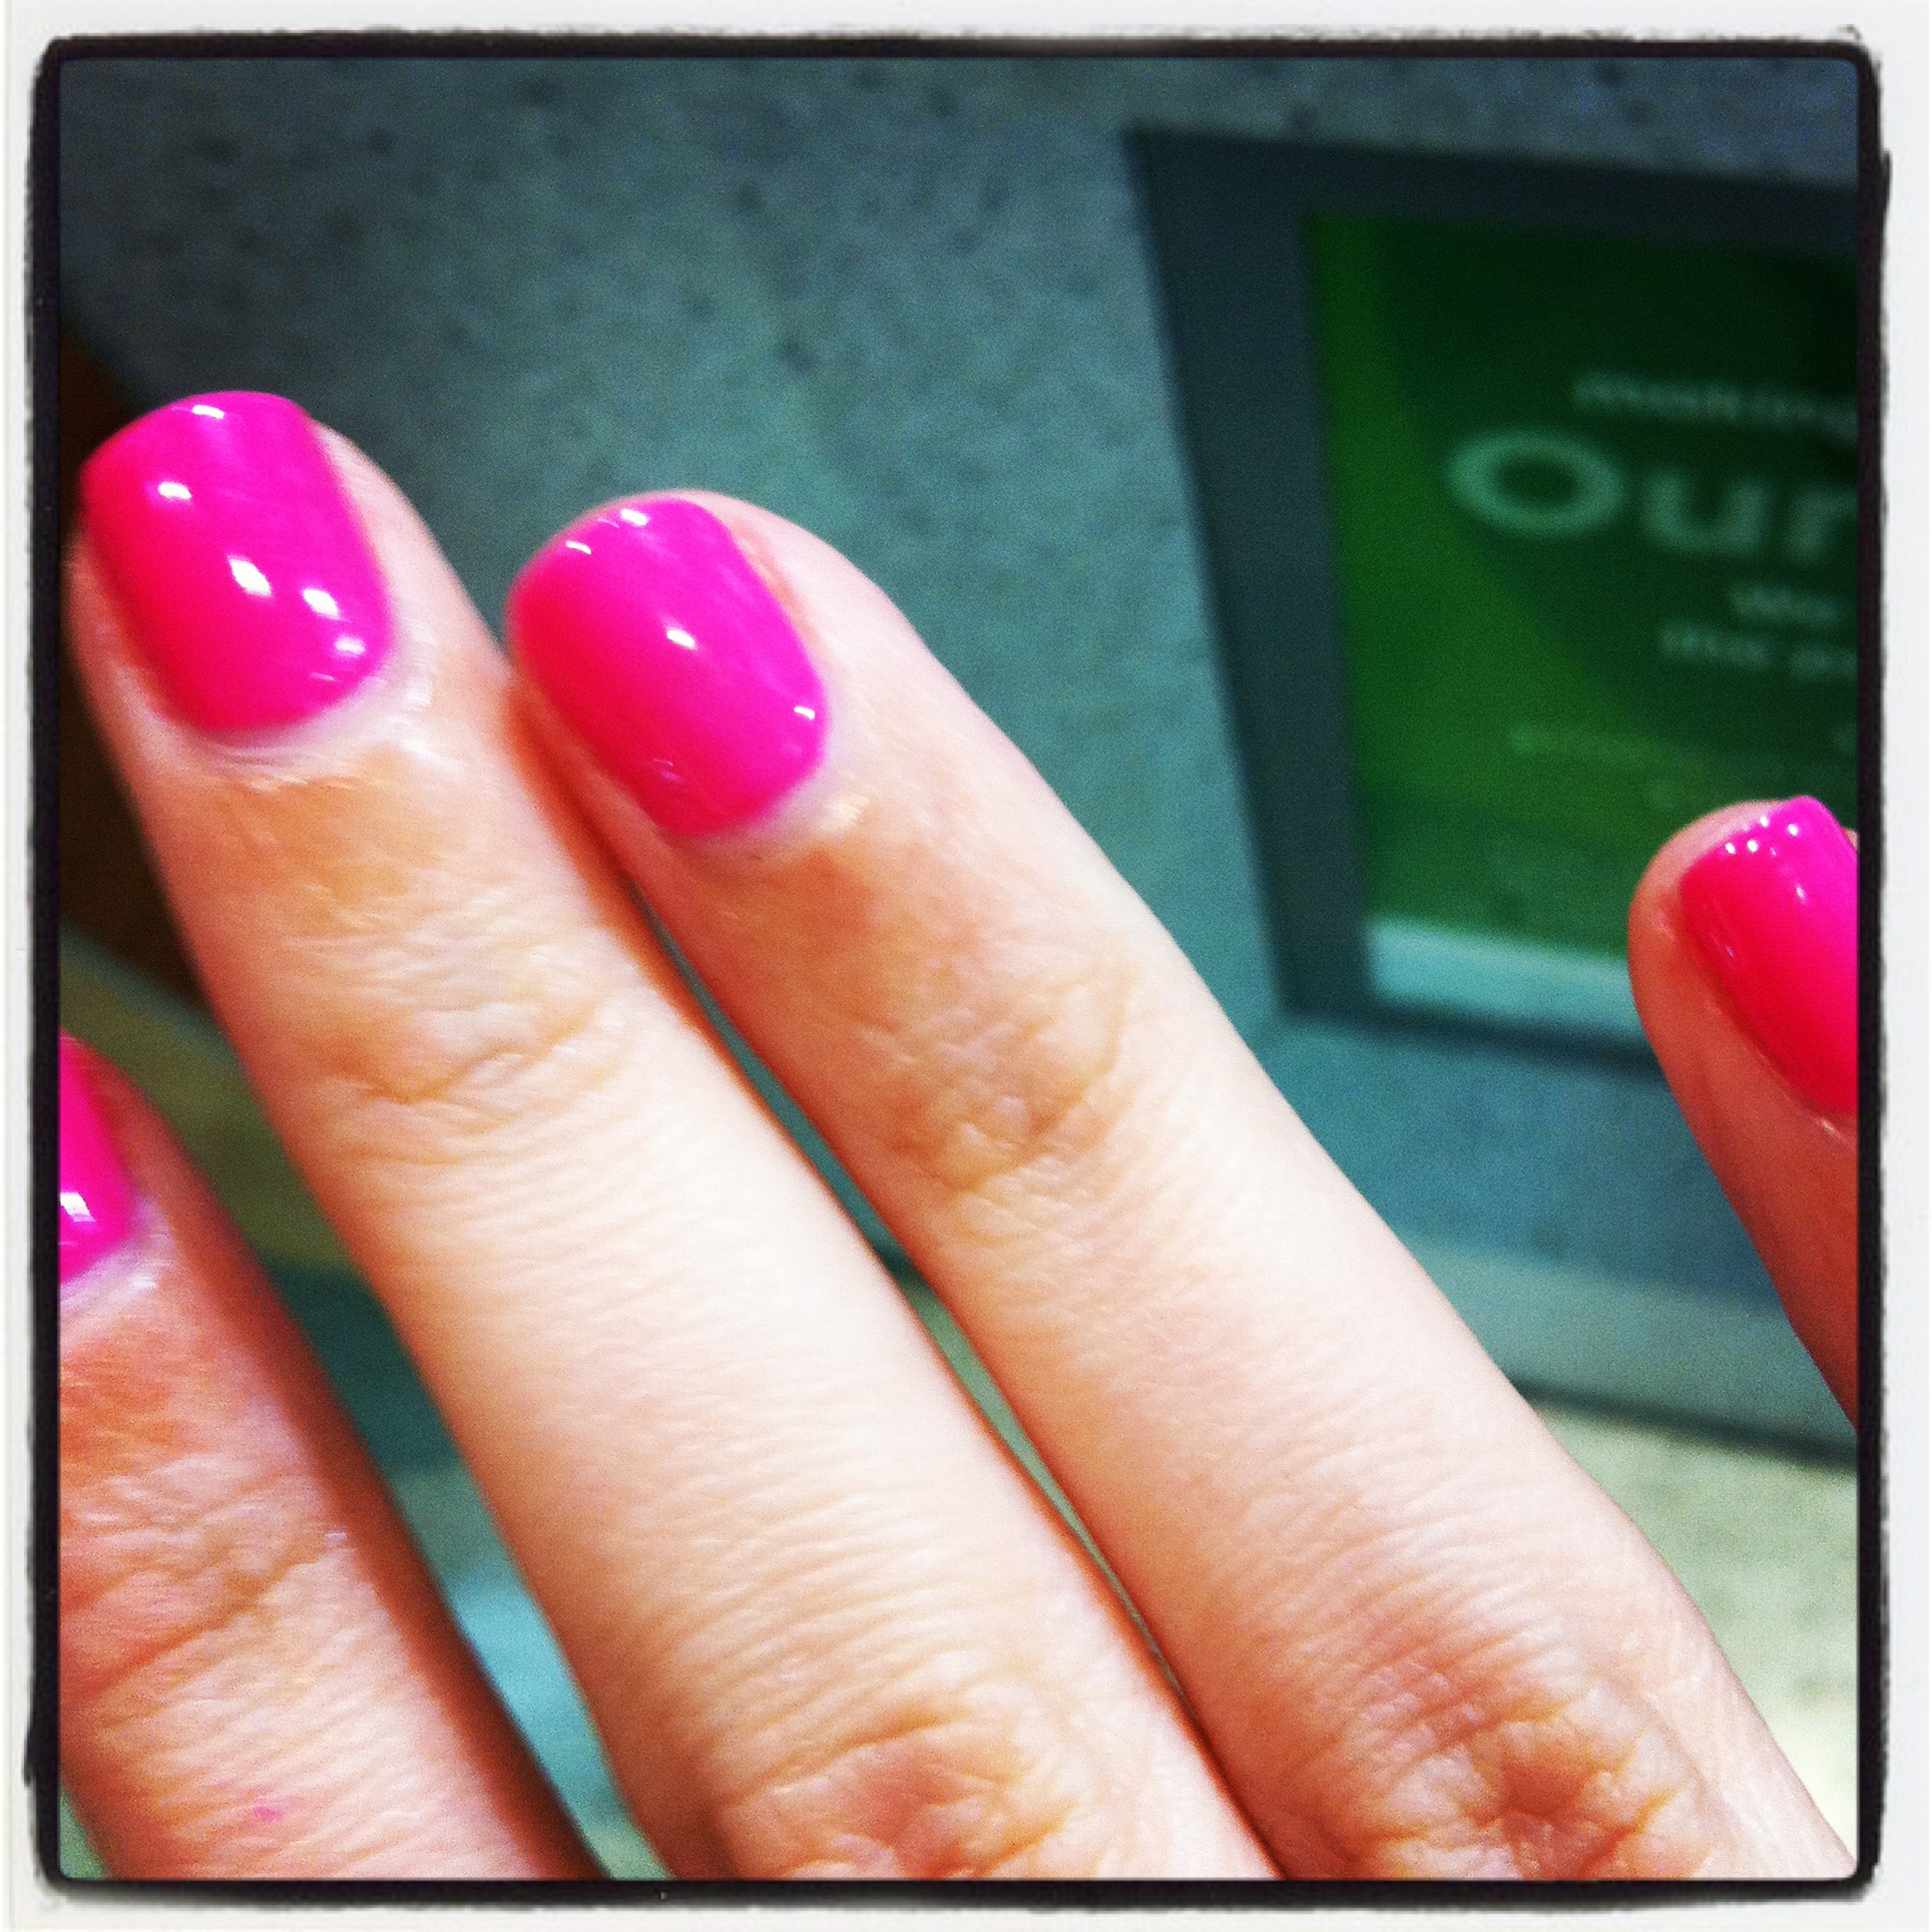 My fave Shellac colour: Hot Pop Pink